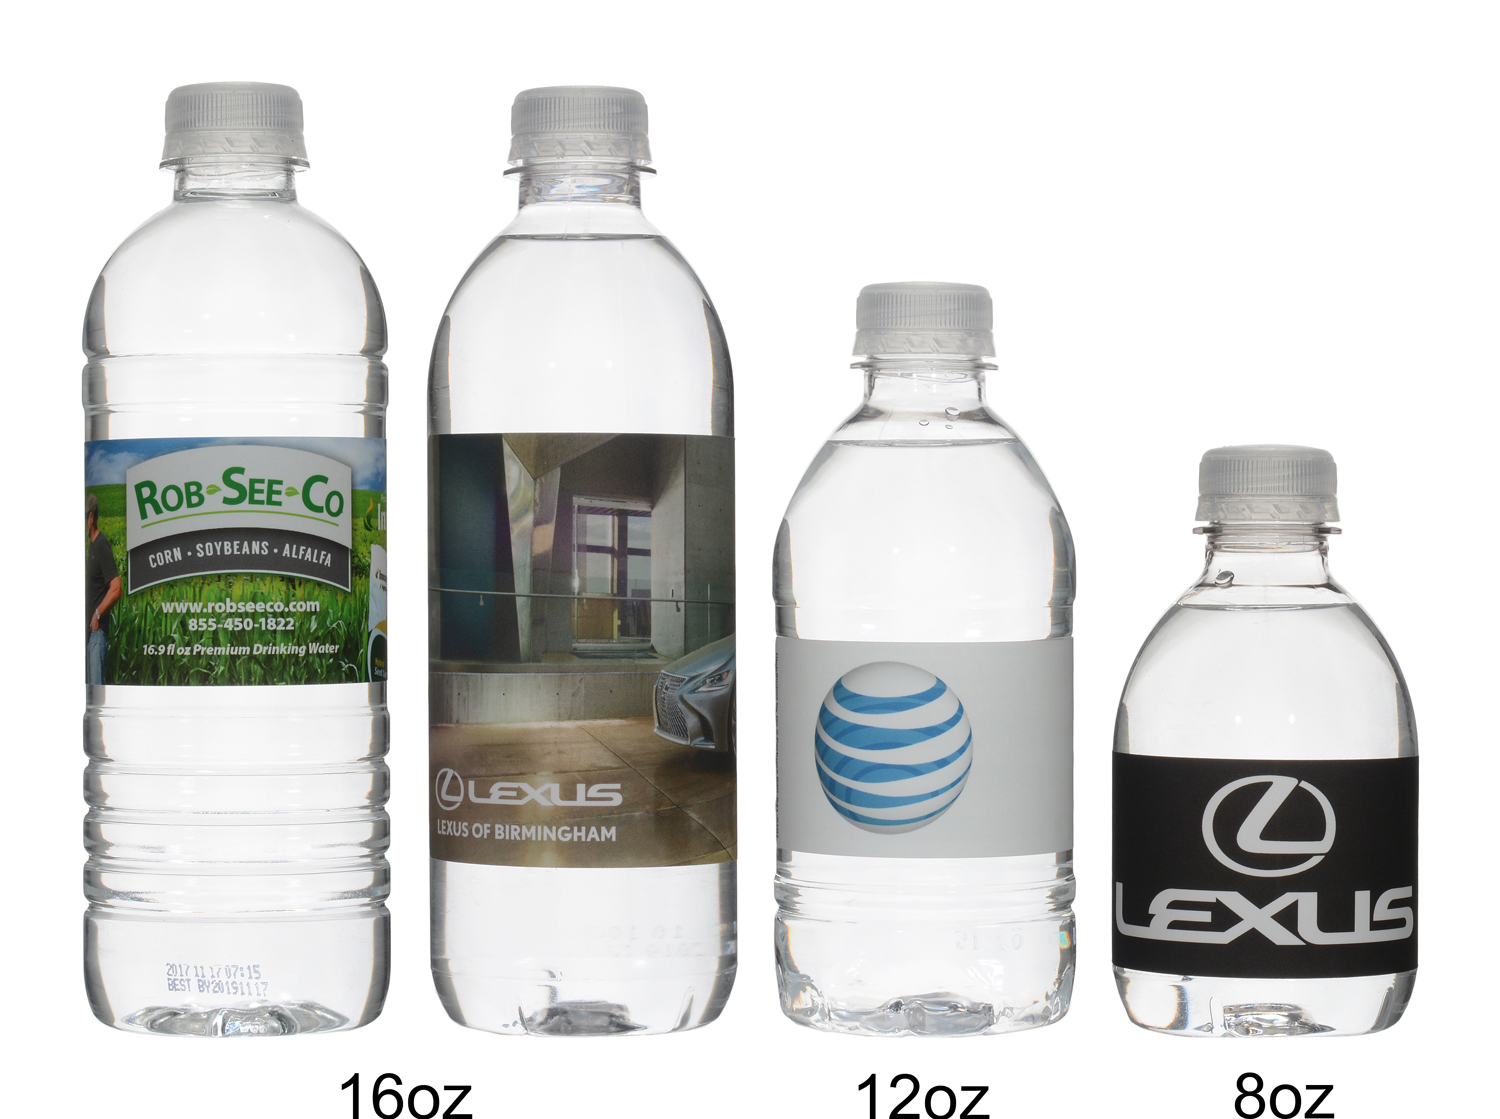 Custom water bottles produced and shipped from Florida.